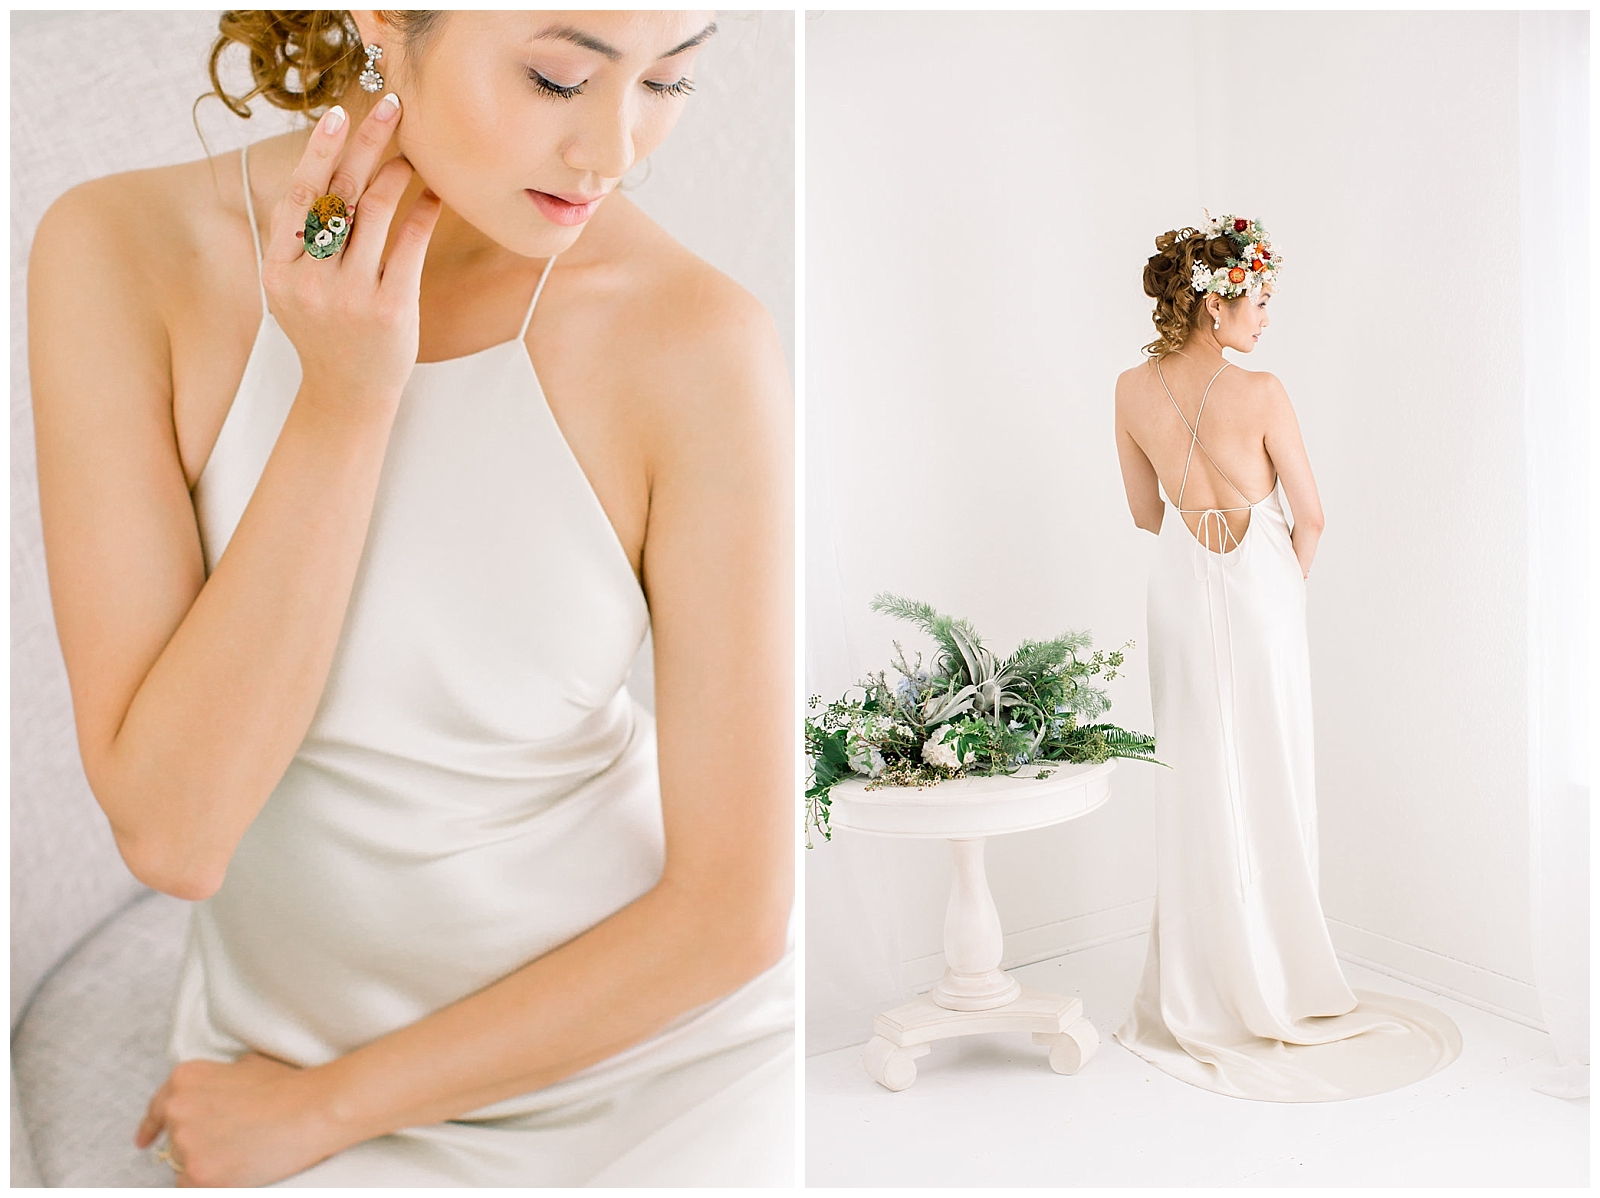 Living-Accessories-styled-shoot-de-joy-photography-epiphany-boutique-minimalist-gown.jpg